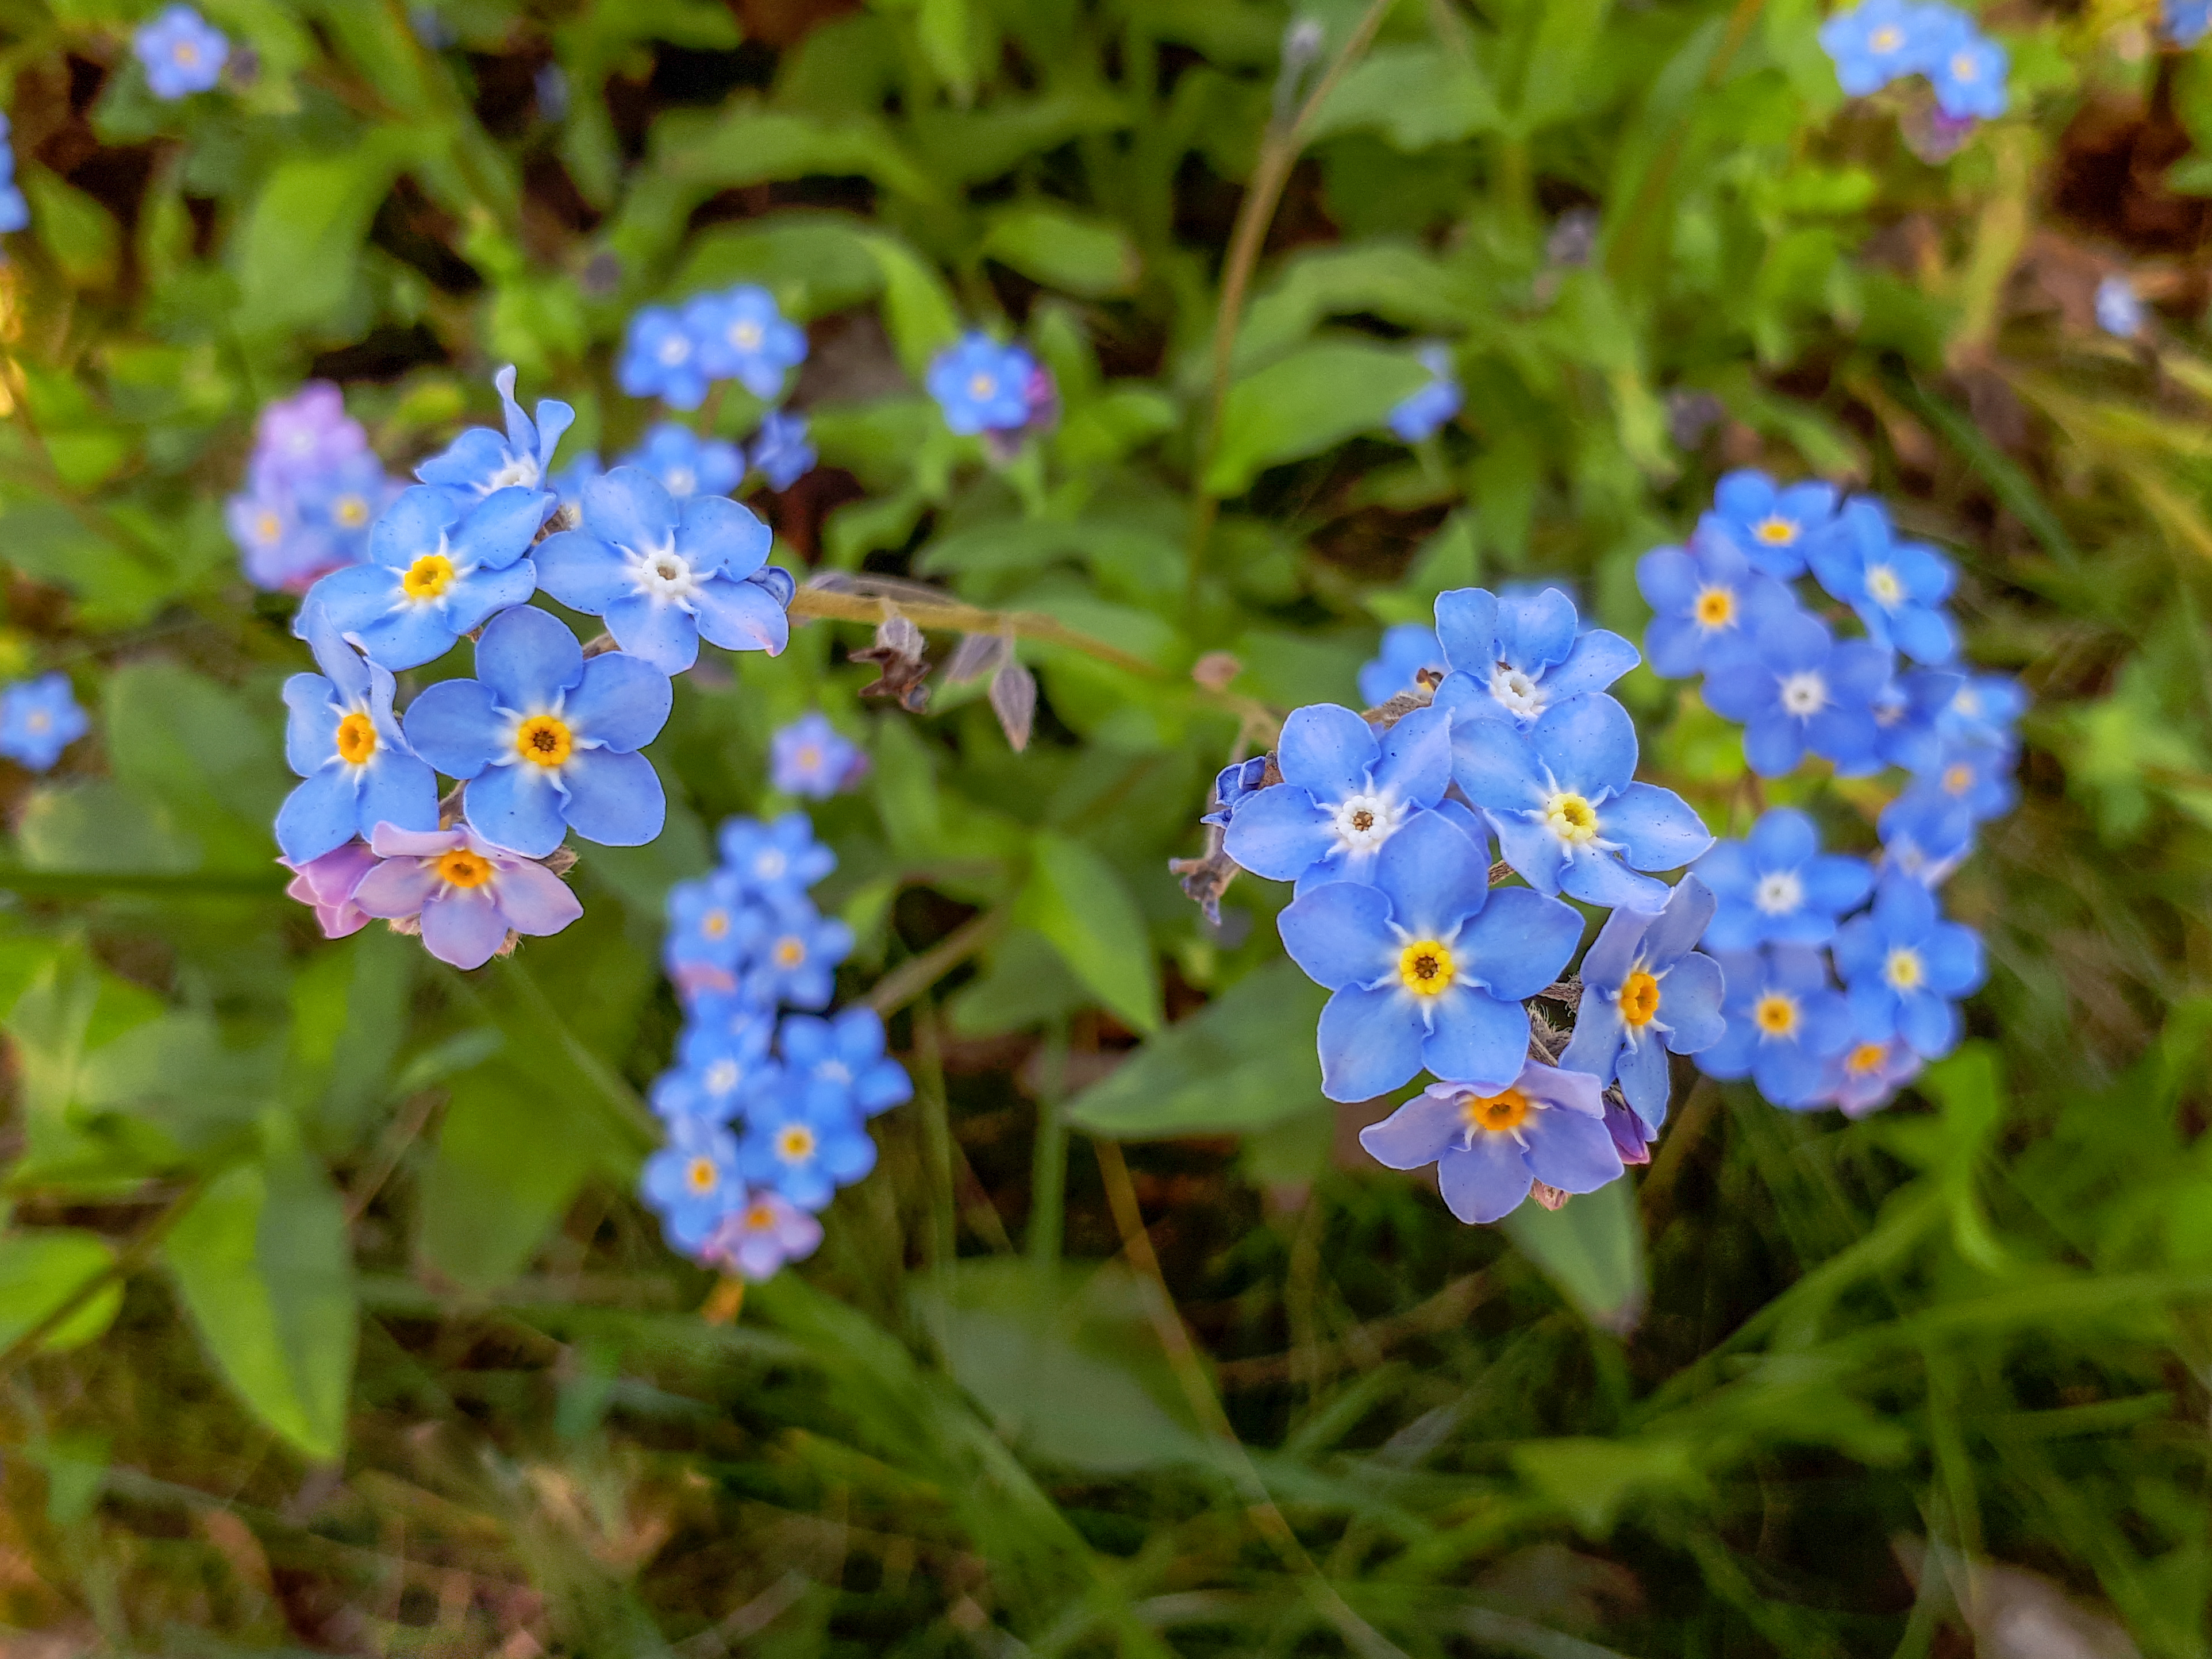 Blue Water Forget-me-not Flowers with Green Leaves